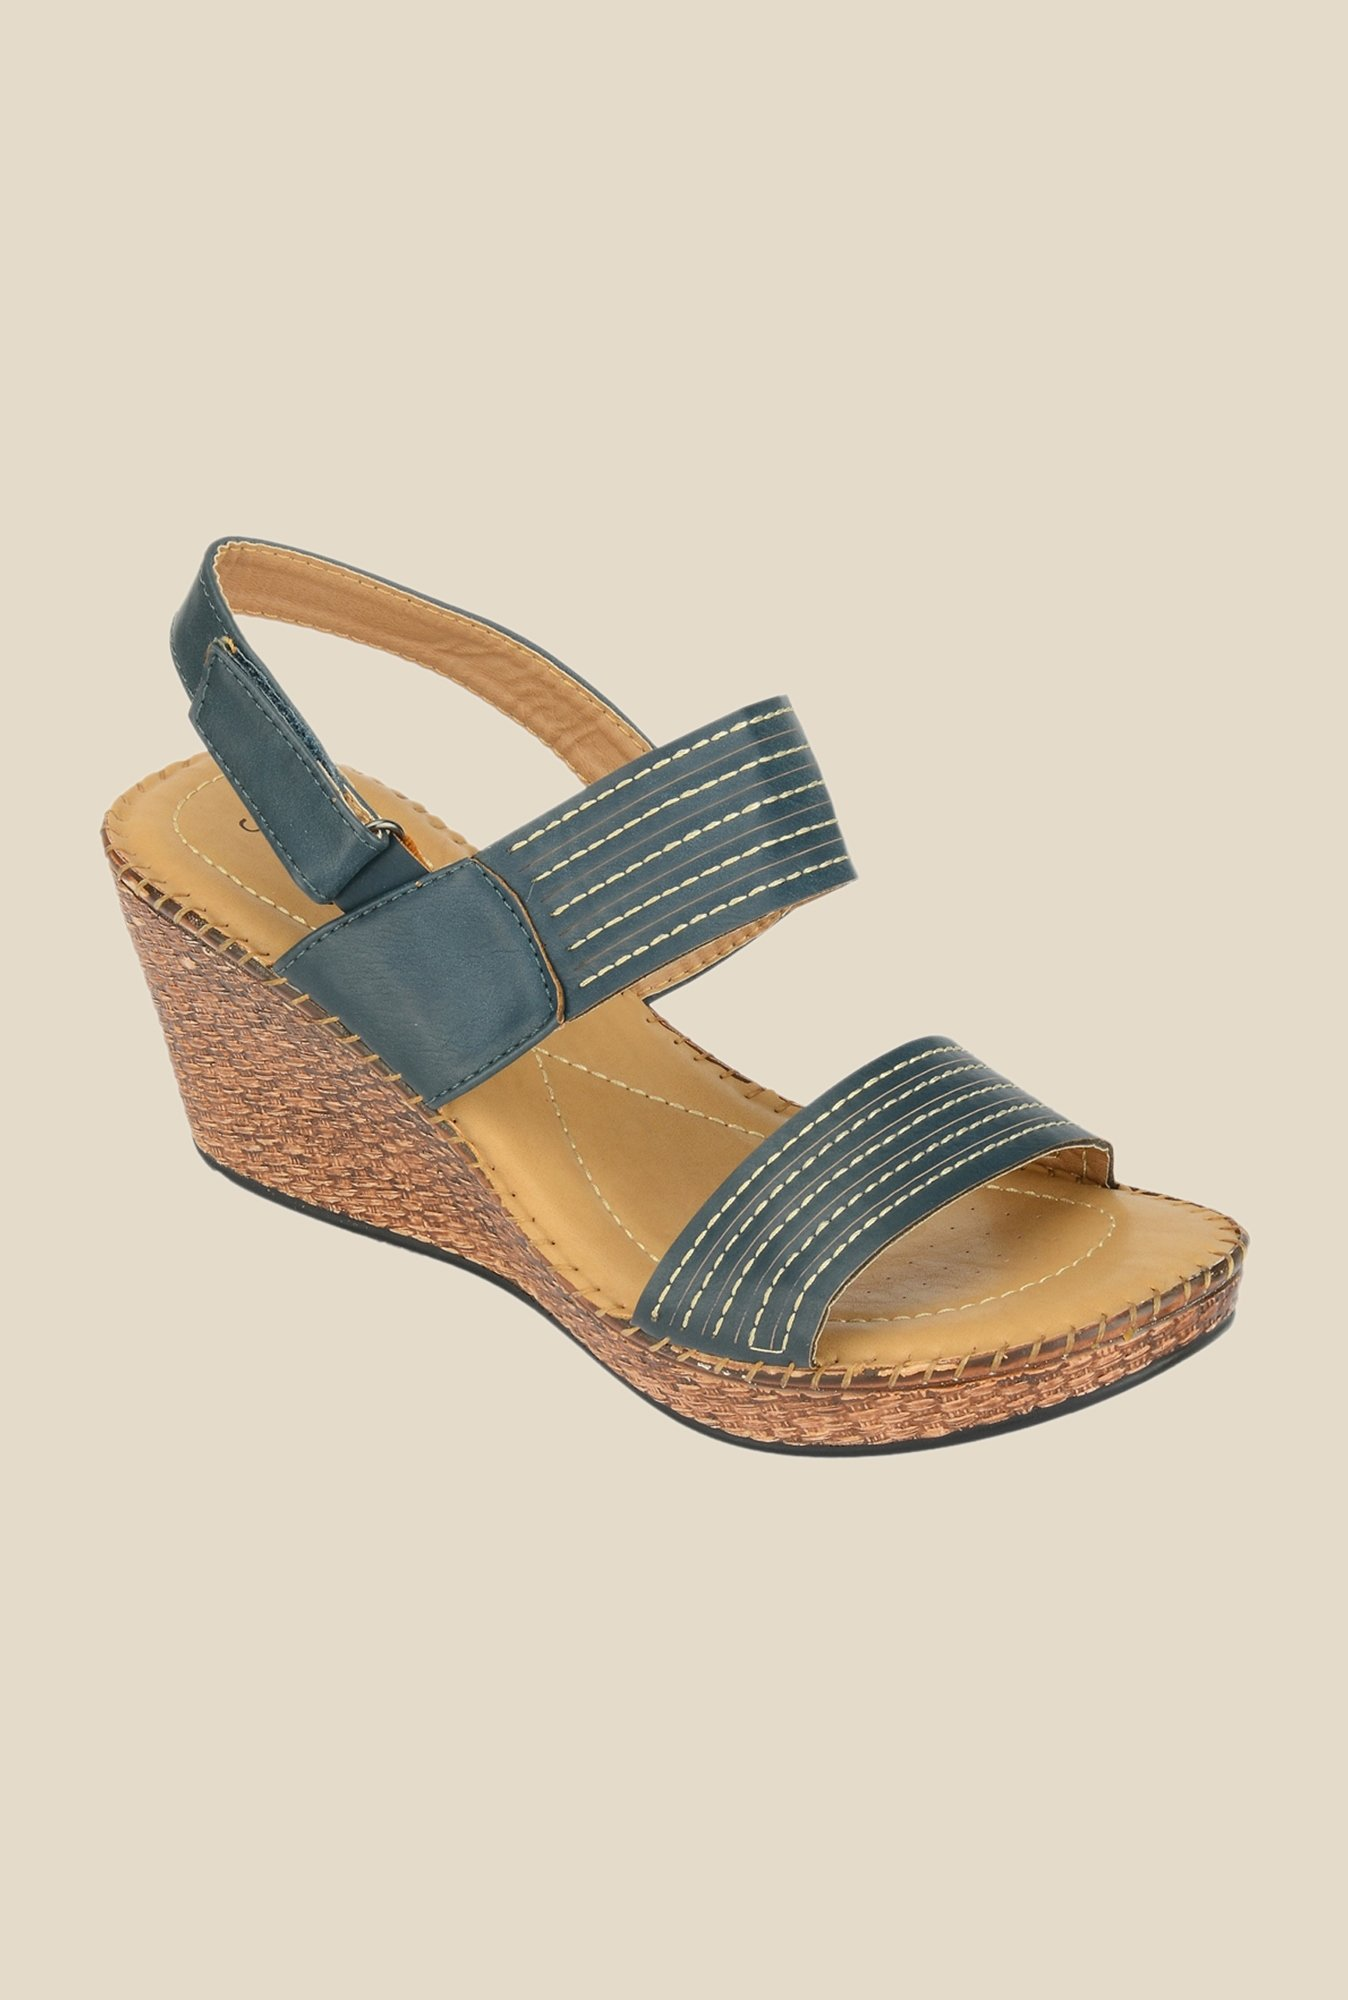 Khadim's Sharon Navy Back Strap Wedges